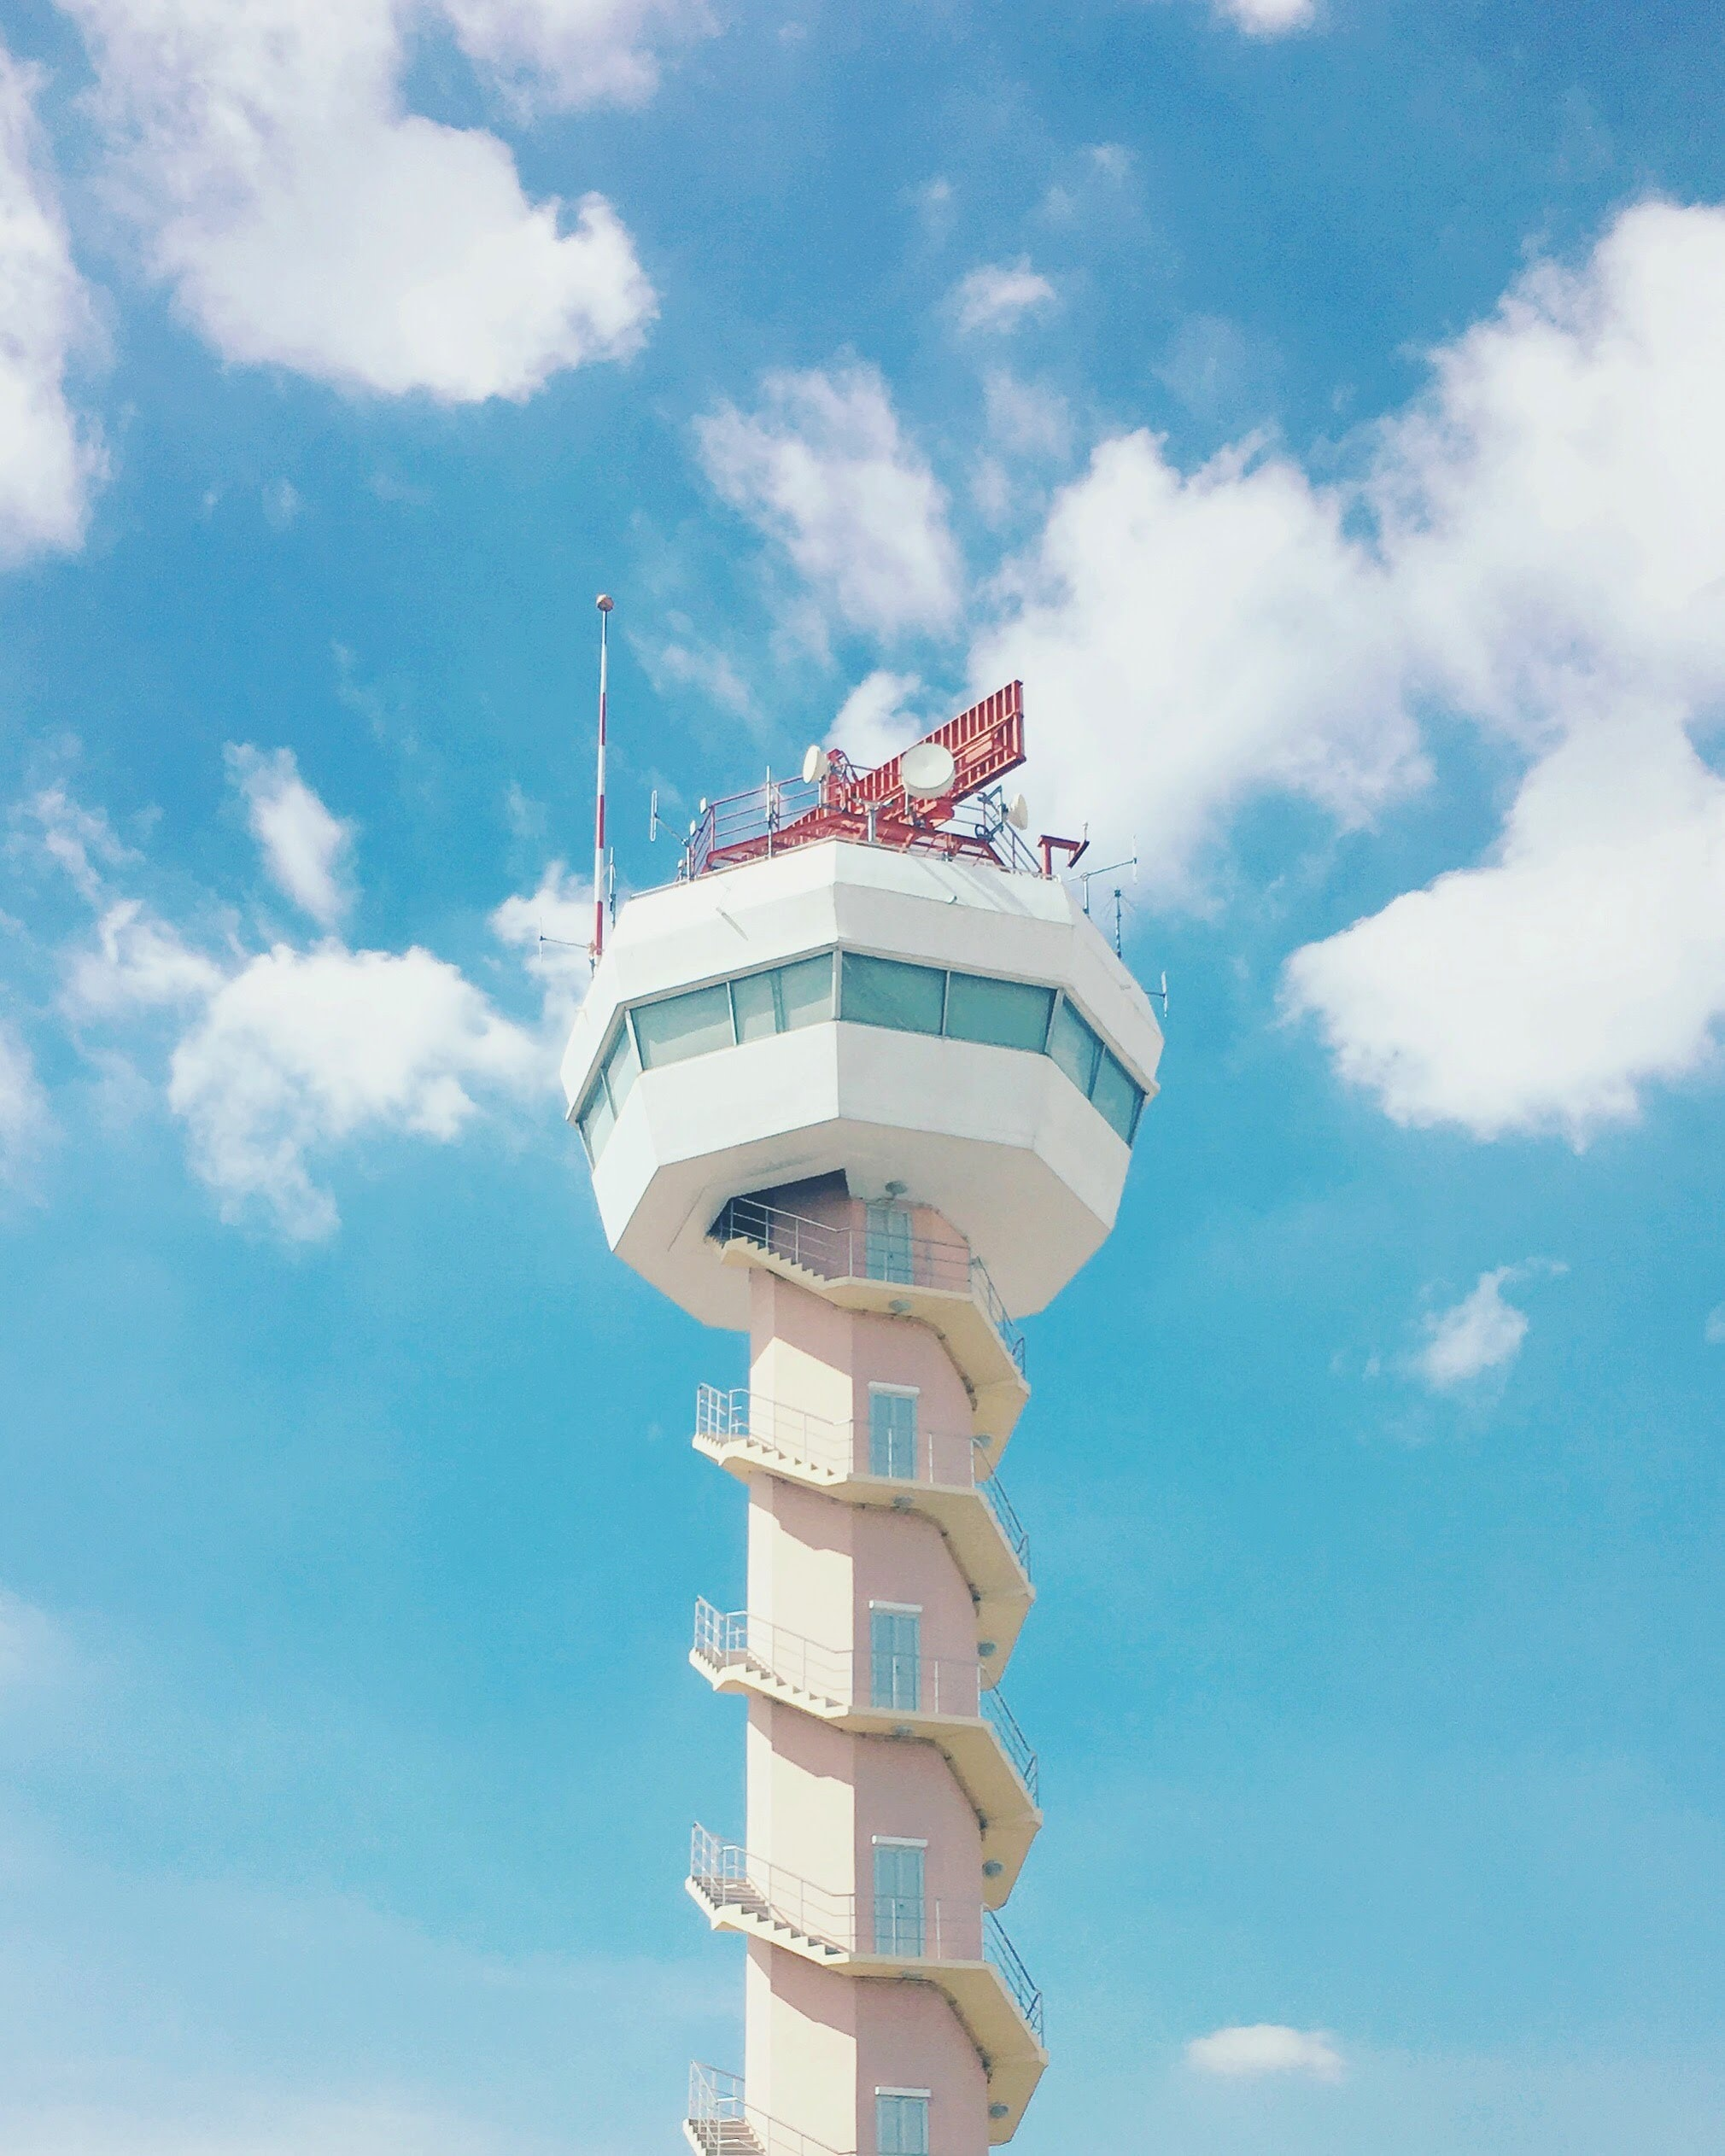 white airport tower under blue sky